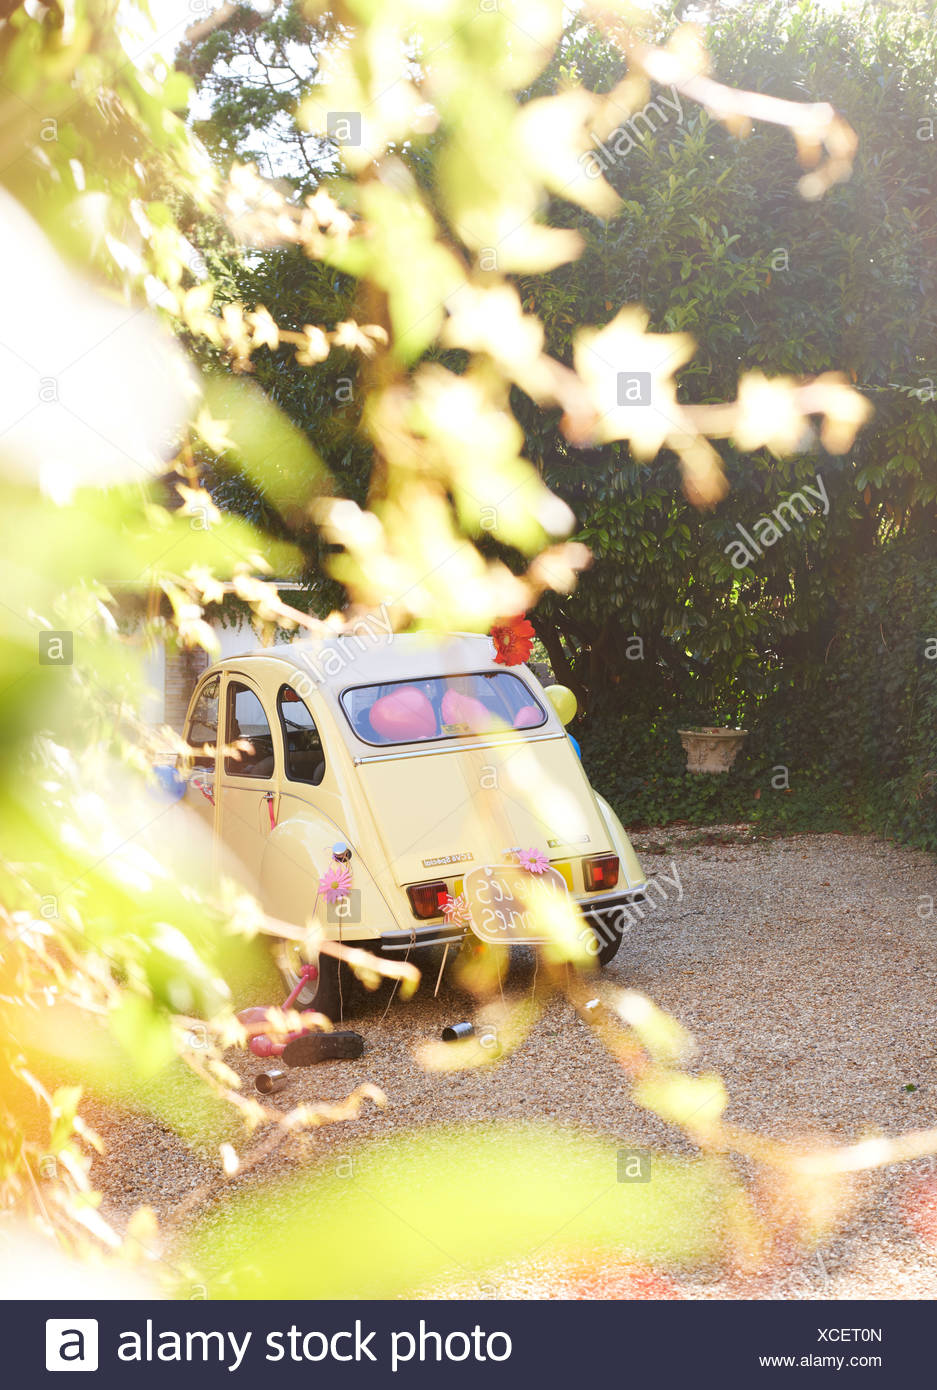 Yellow car obscured by leaves - Stock Image